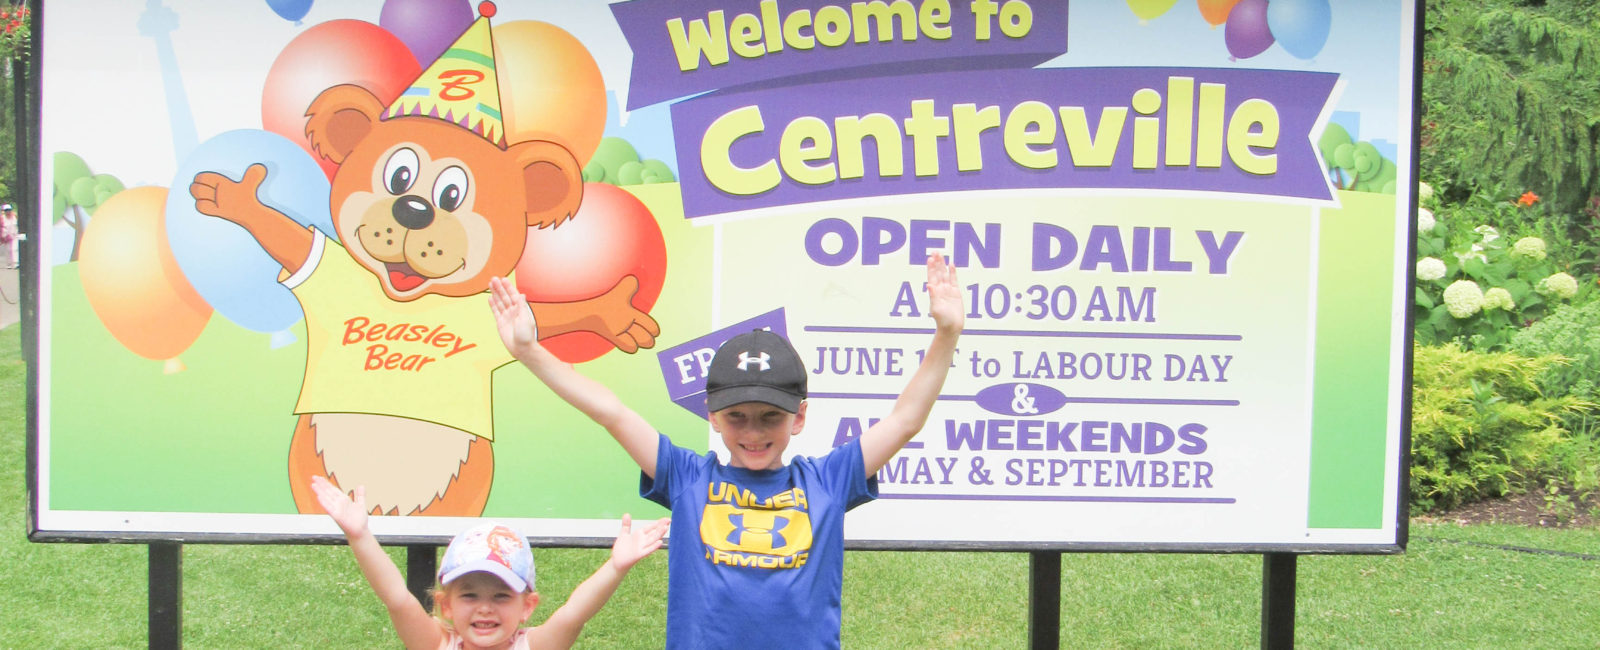 Our Visit to Centreville!